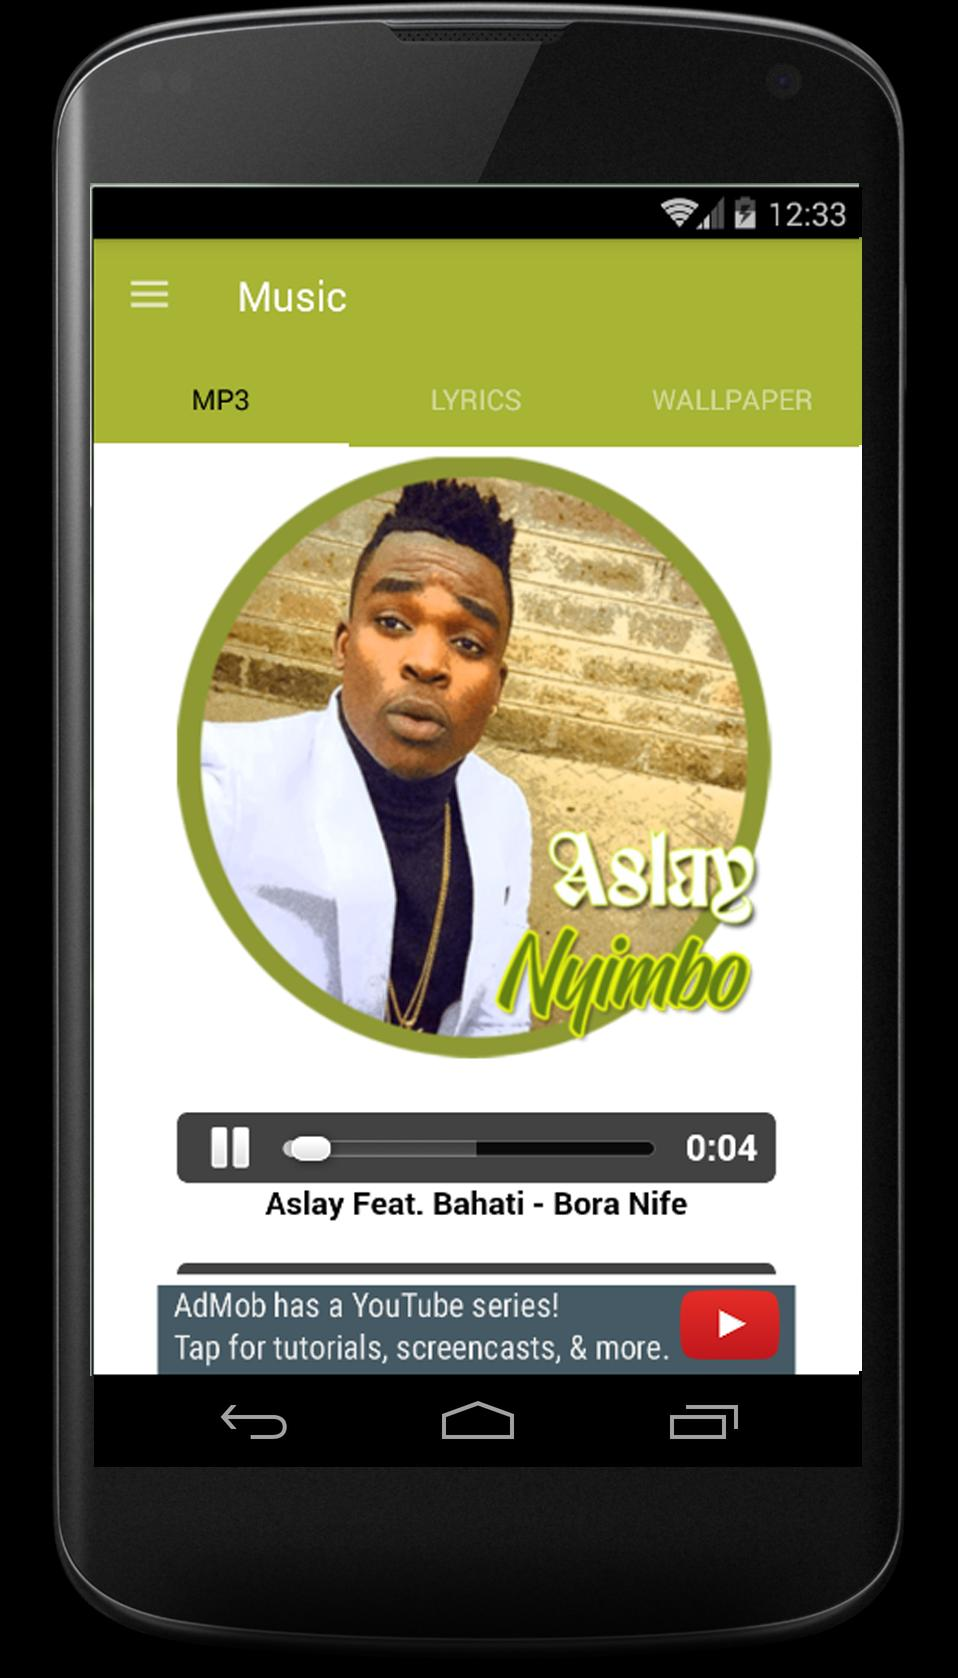 Aslay ft Bahati - Bora Nife for Android - APK Download